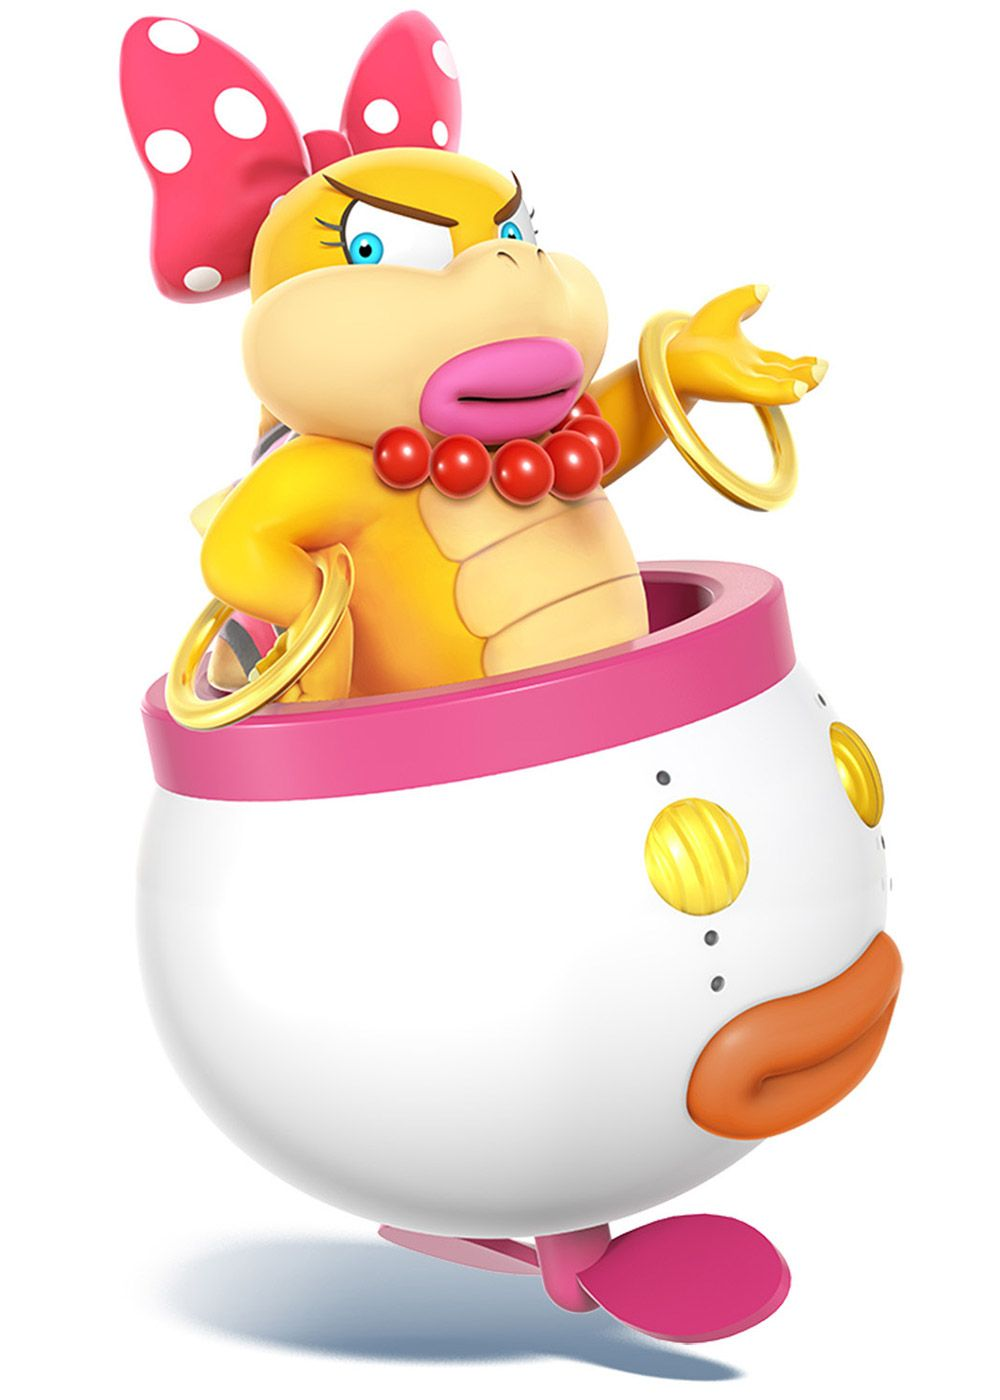 Wendy o koopa clipart png black and white Wendy O. Koopa - Characters & Art - Super Smash Bros. for ... png black and white